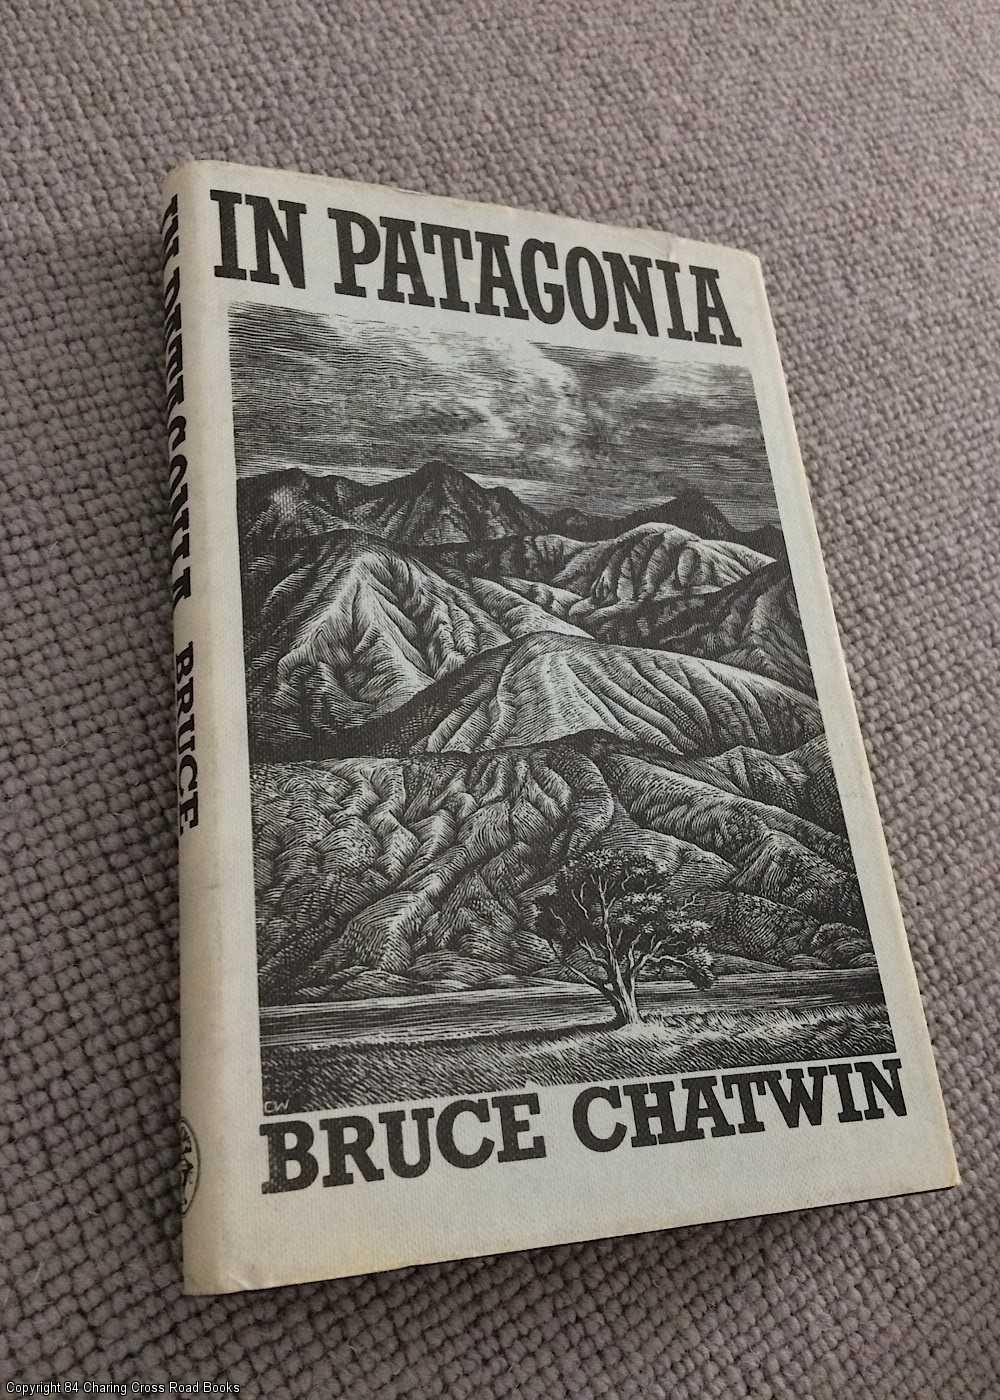 CHATWIN, BRUCE - In Patagonia